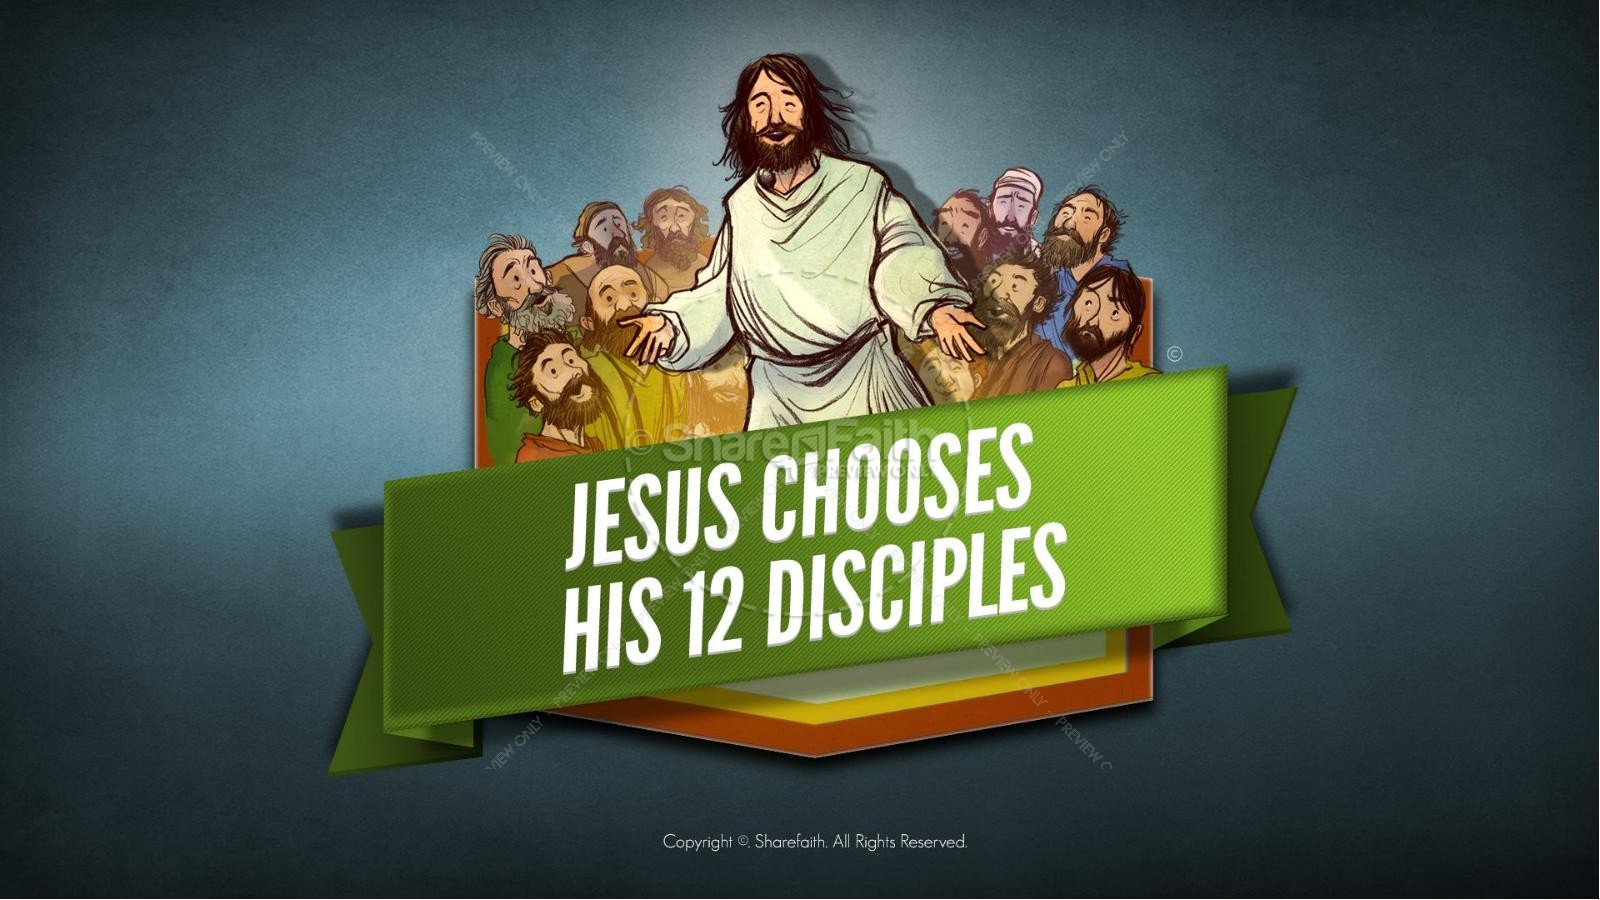 Jesus Chooses His 12 Disciples Kids Bible Story Kids Bible Stories